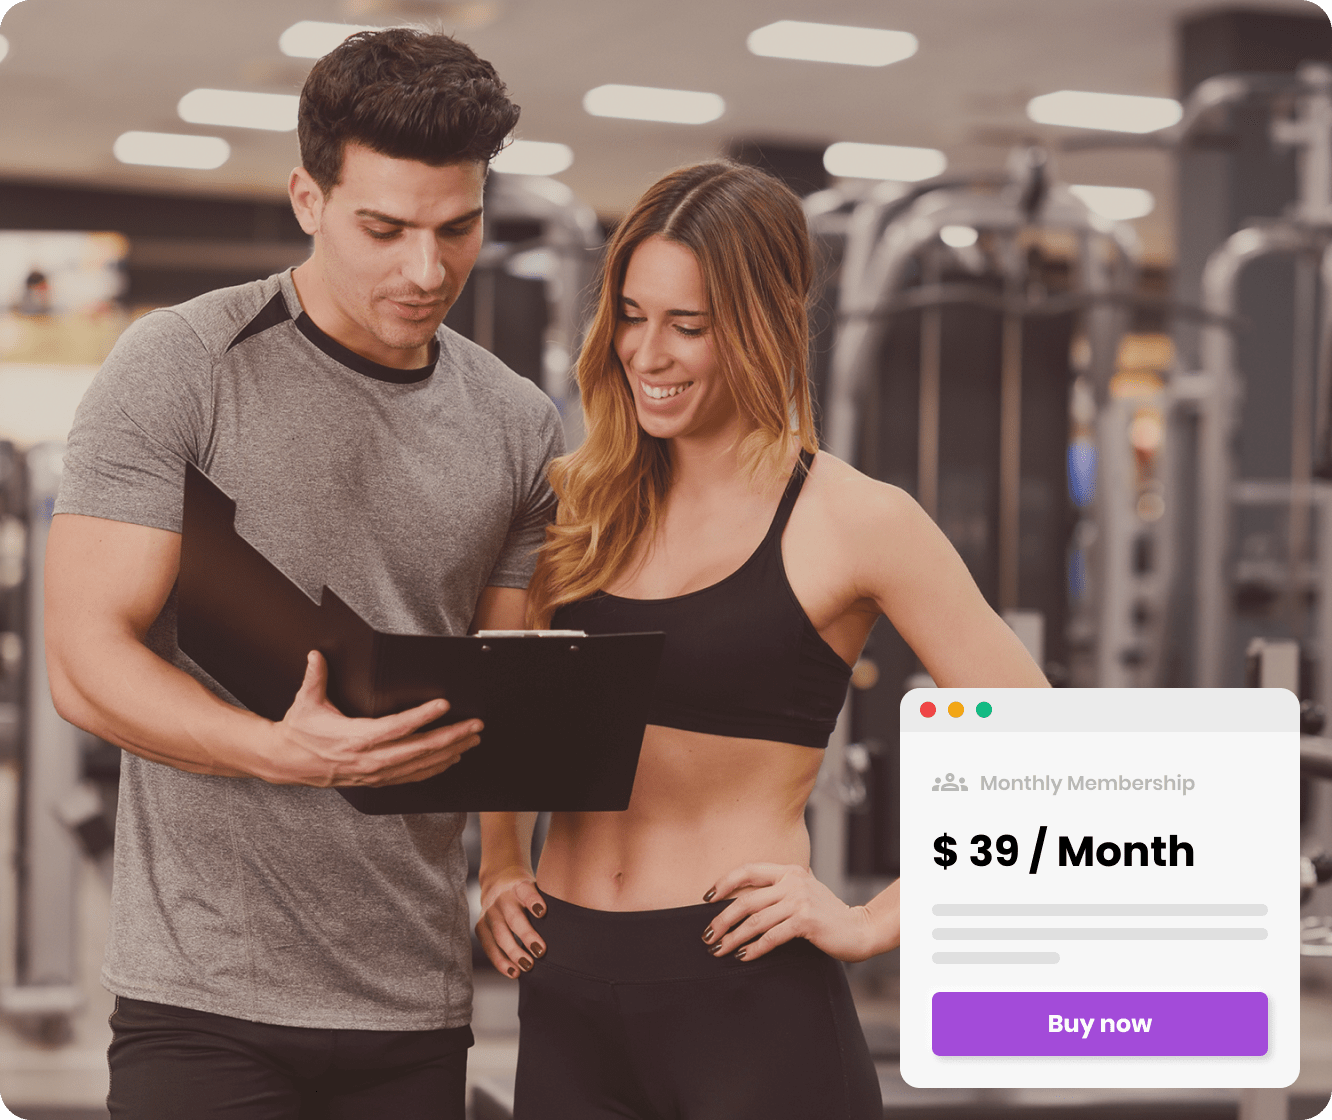 Fitness trainer with his client